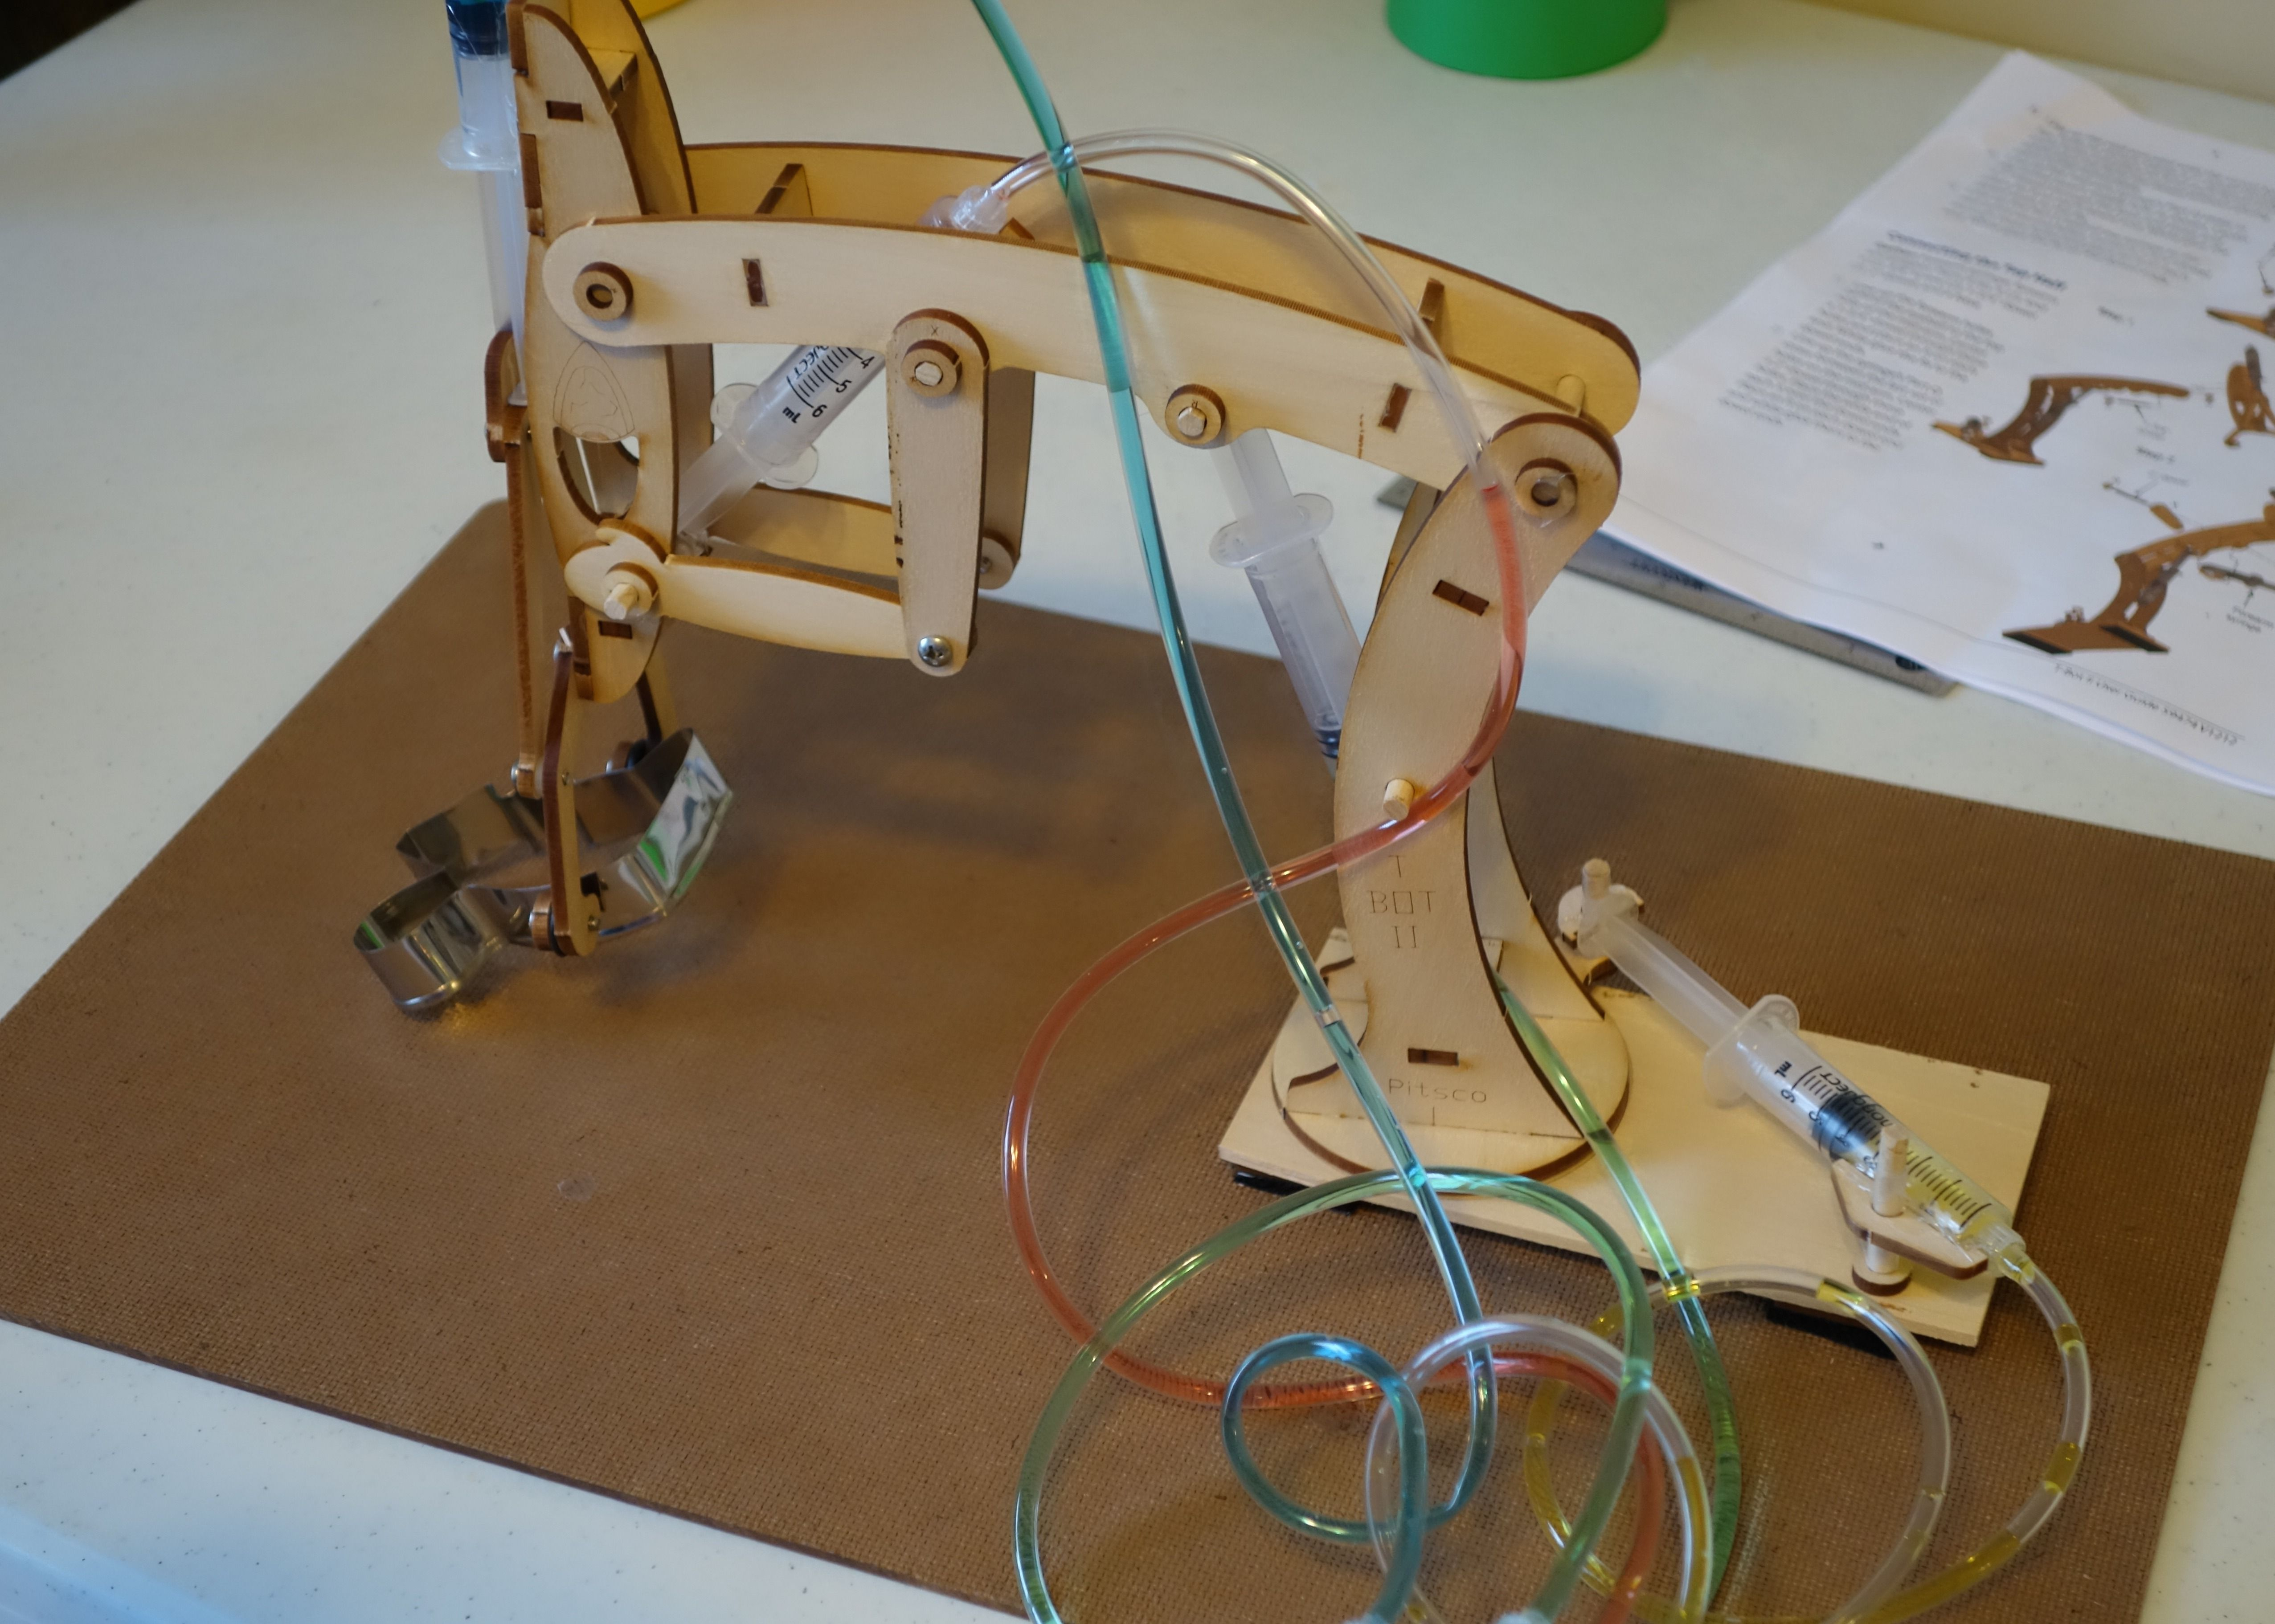 Hydraulic Arm Kit Science Home Projects